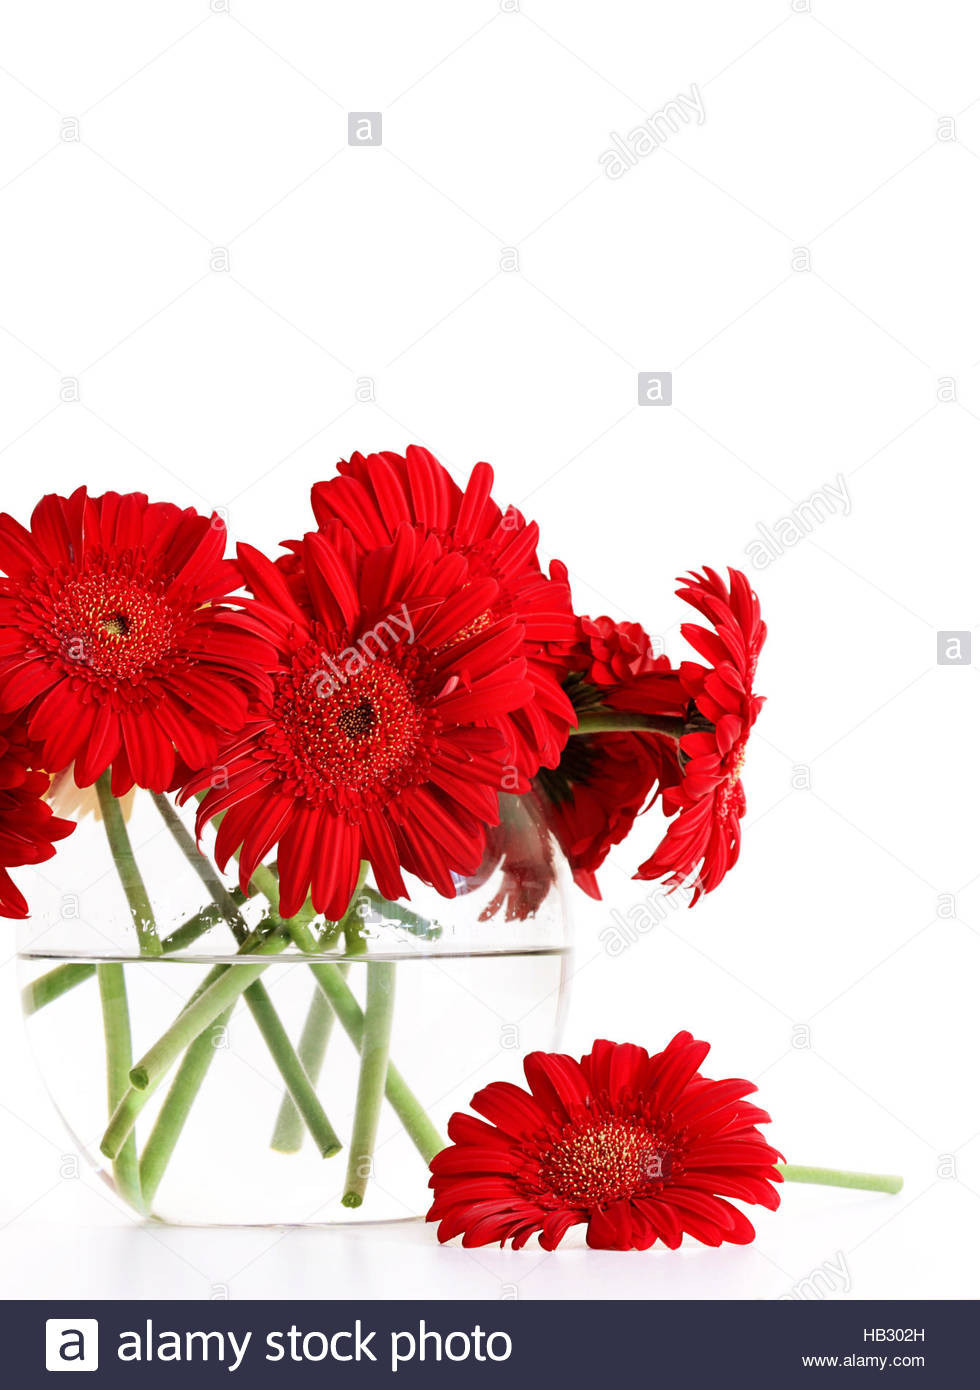 red glass heart shaped vase of red glass vase photos single red glass vase isolated stock s within red glass vase pics closeup od red gerber daisies in glass vase stock of red glass